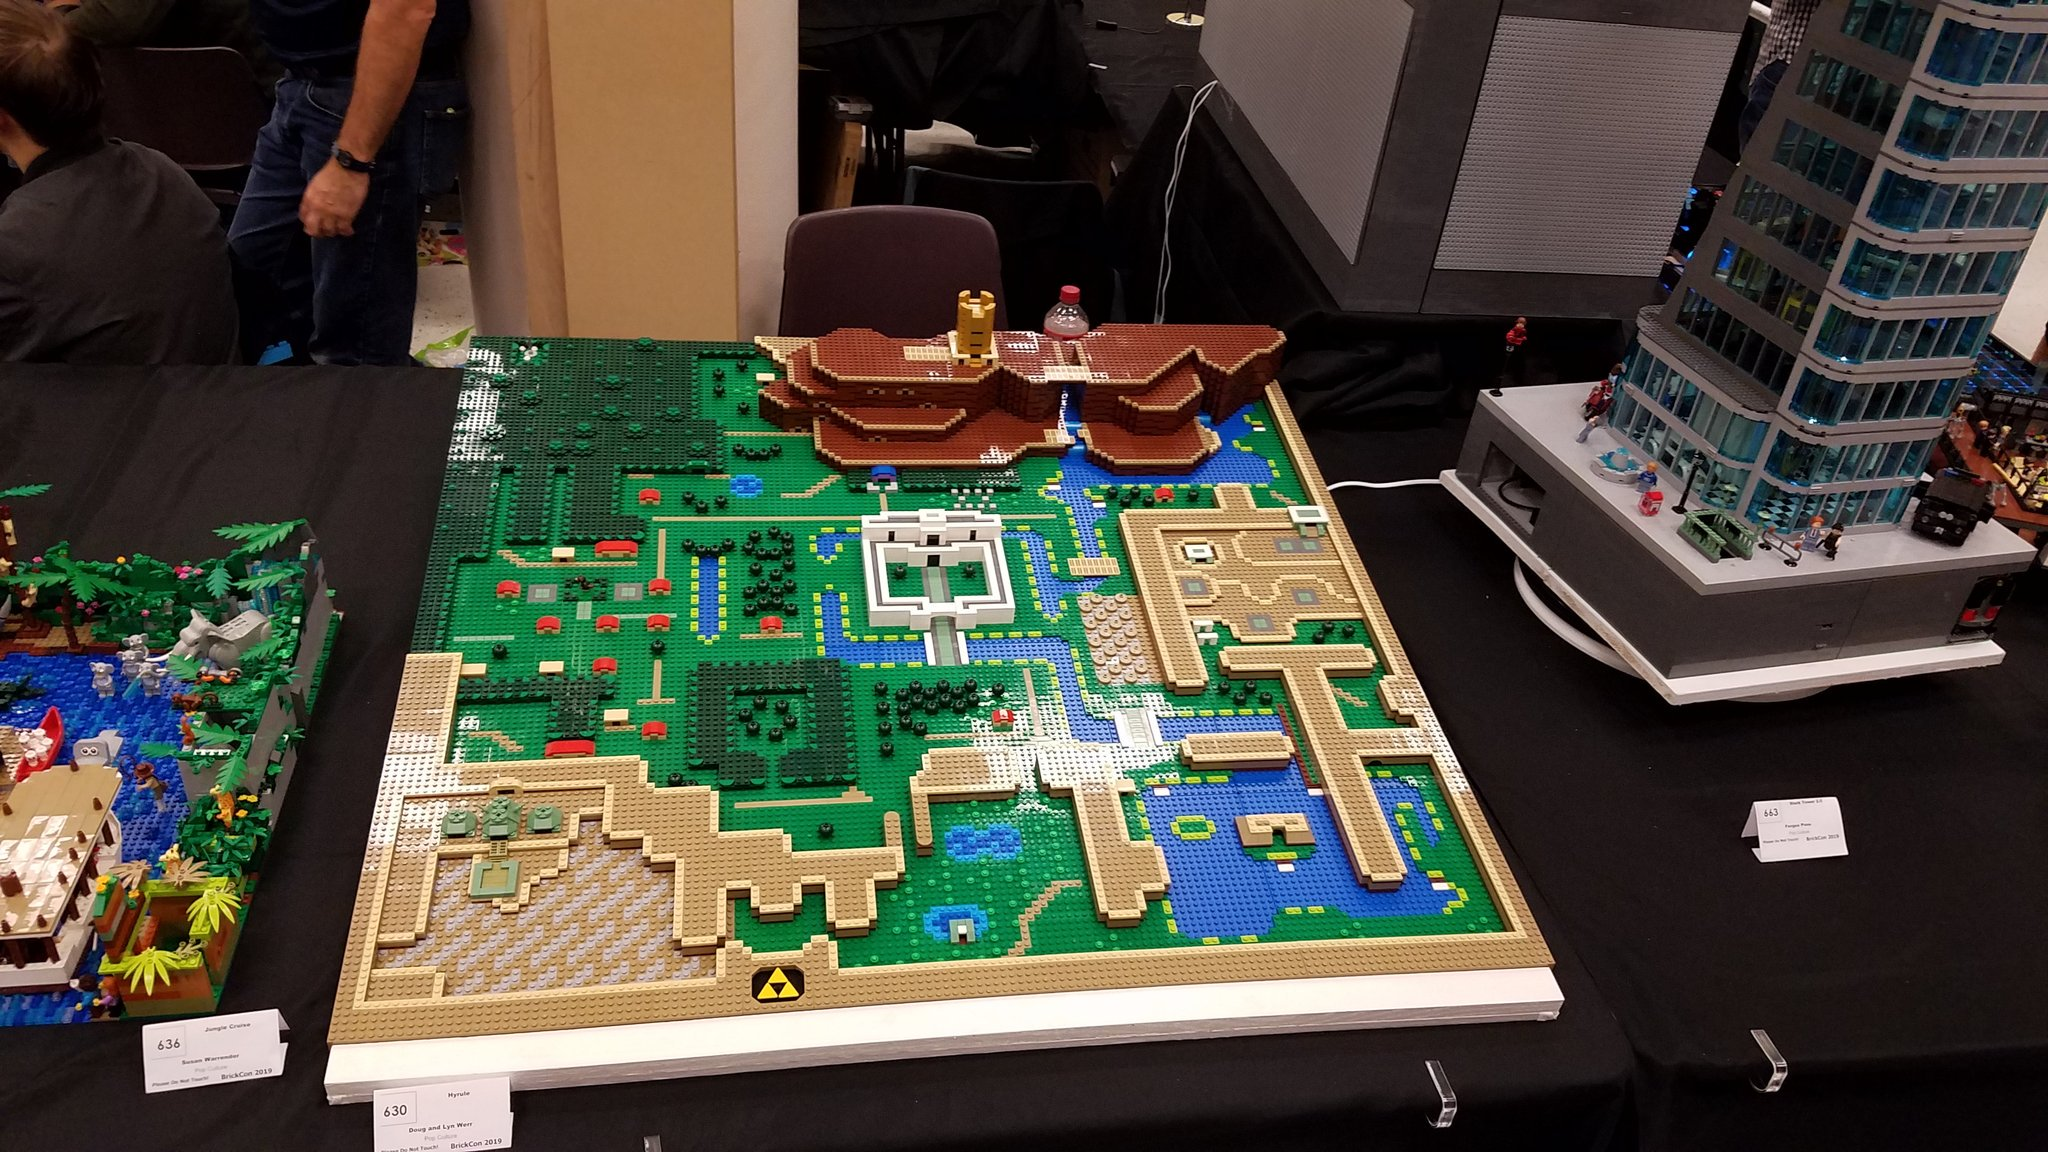 This Zelda Link To The Past Map Made Of Lego Just Makes Me Want